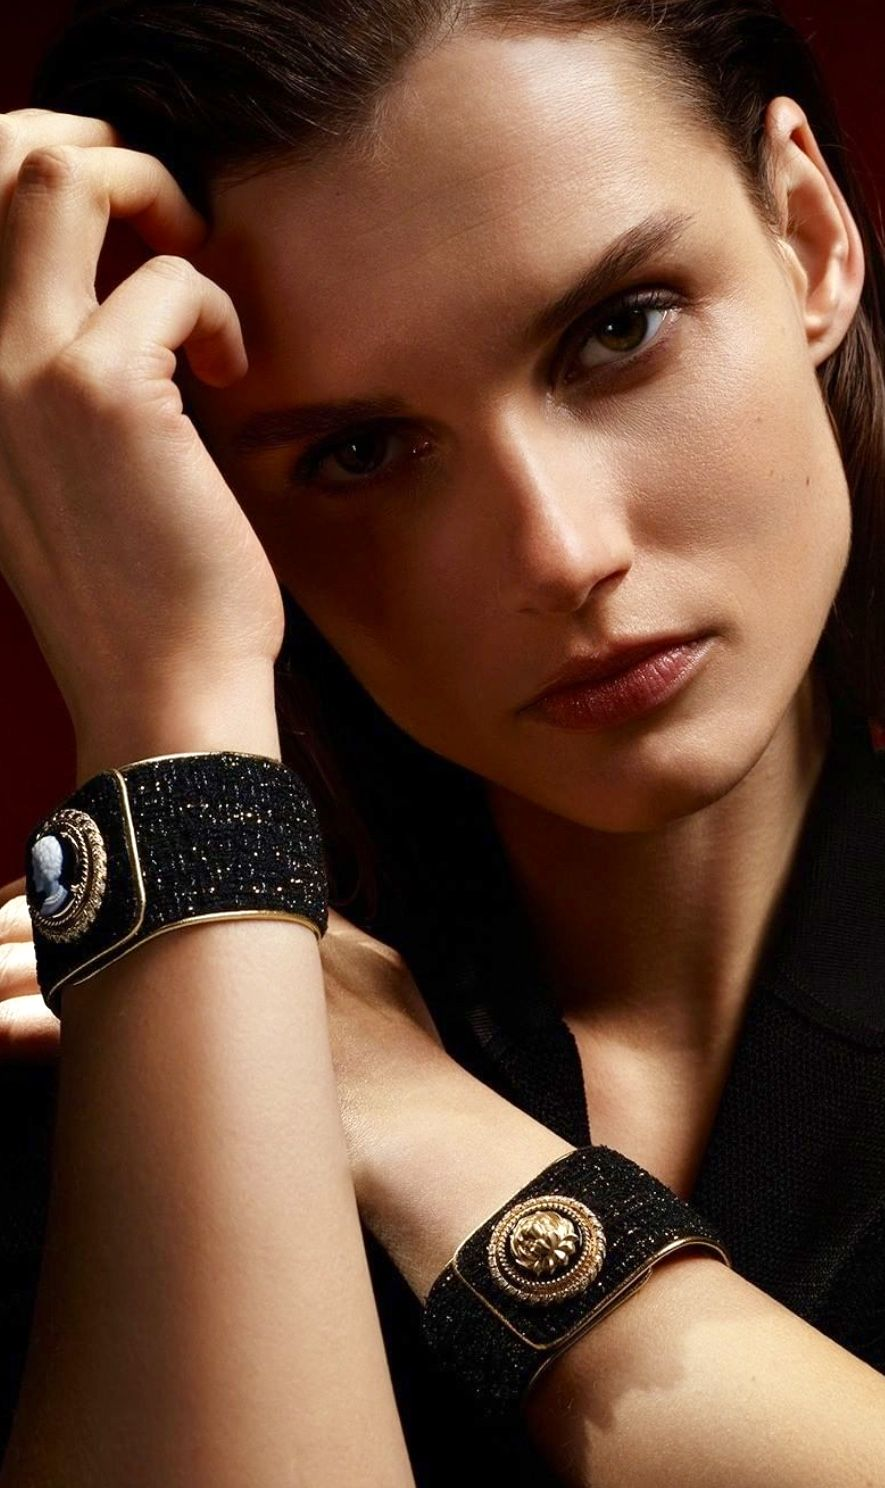 chanel watches cosmetics clothing french fashion designers cheap one piece swimsuits